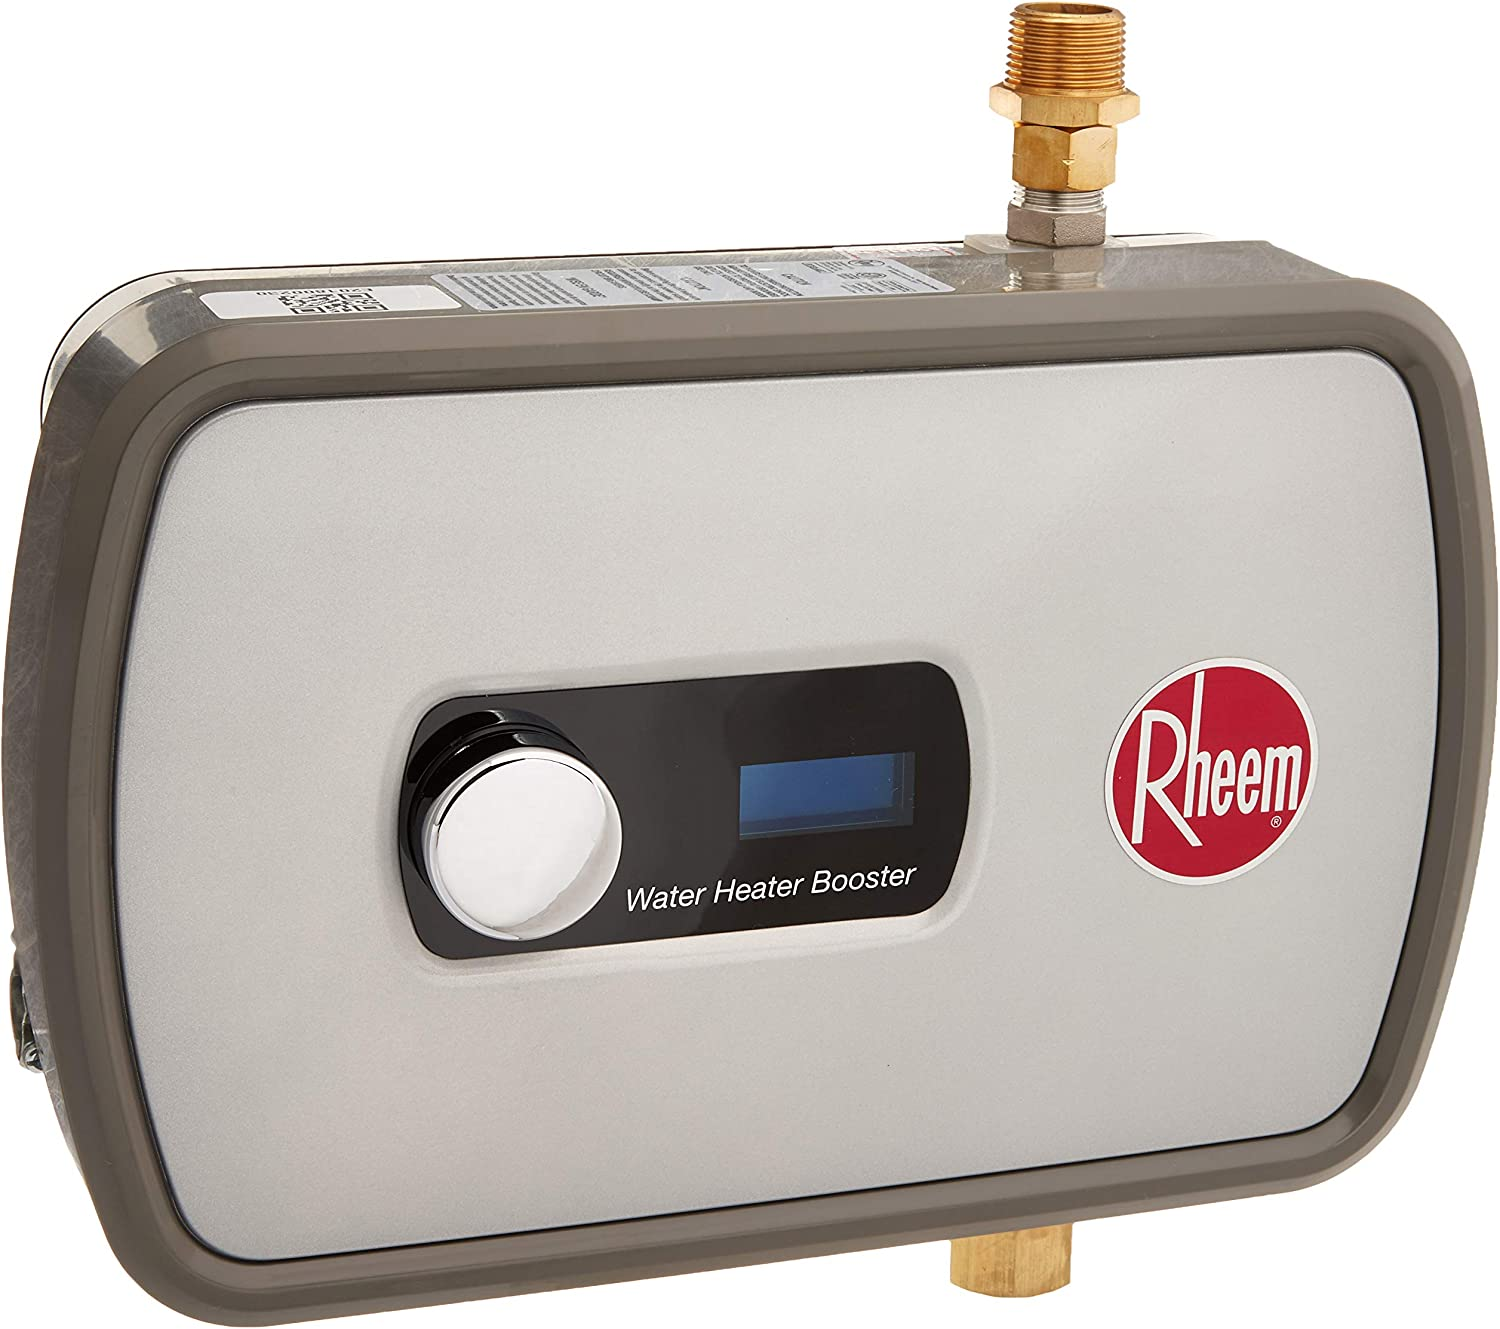 great deals 2017 new photos well known Rheem RTEX-AB Water Heater Booster - - Amazon.com